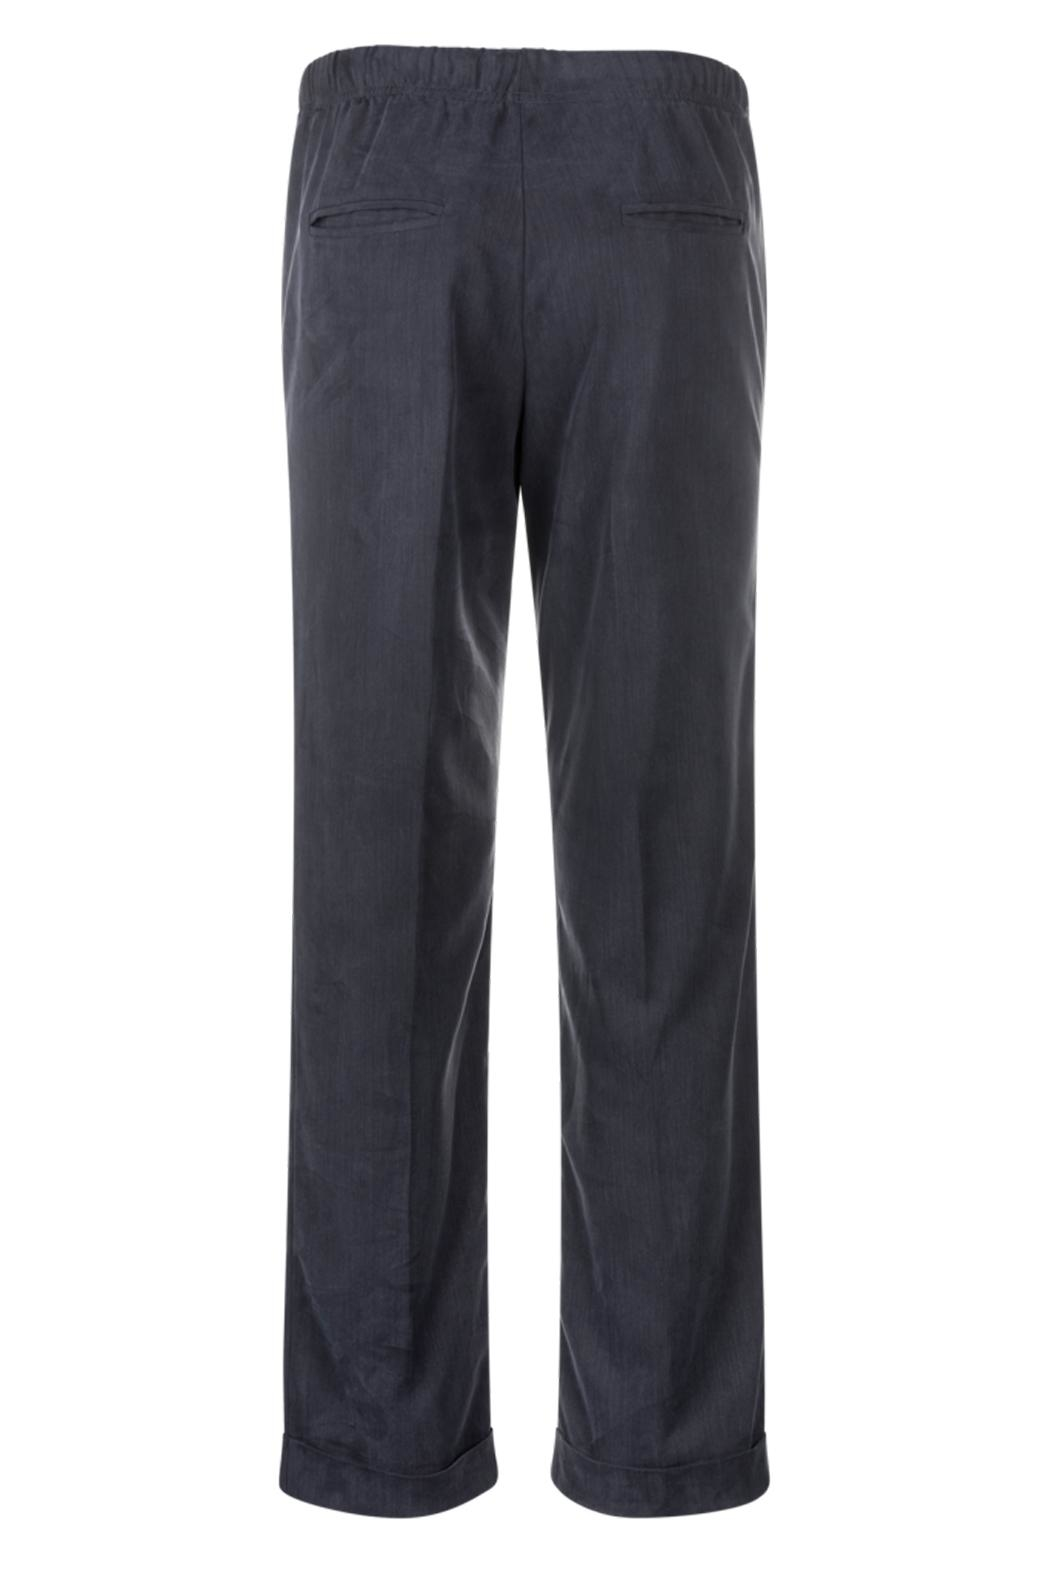 RHUMAA Stylish Casual Trouser - Front Full Image